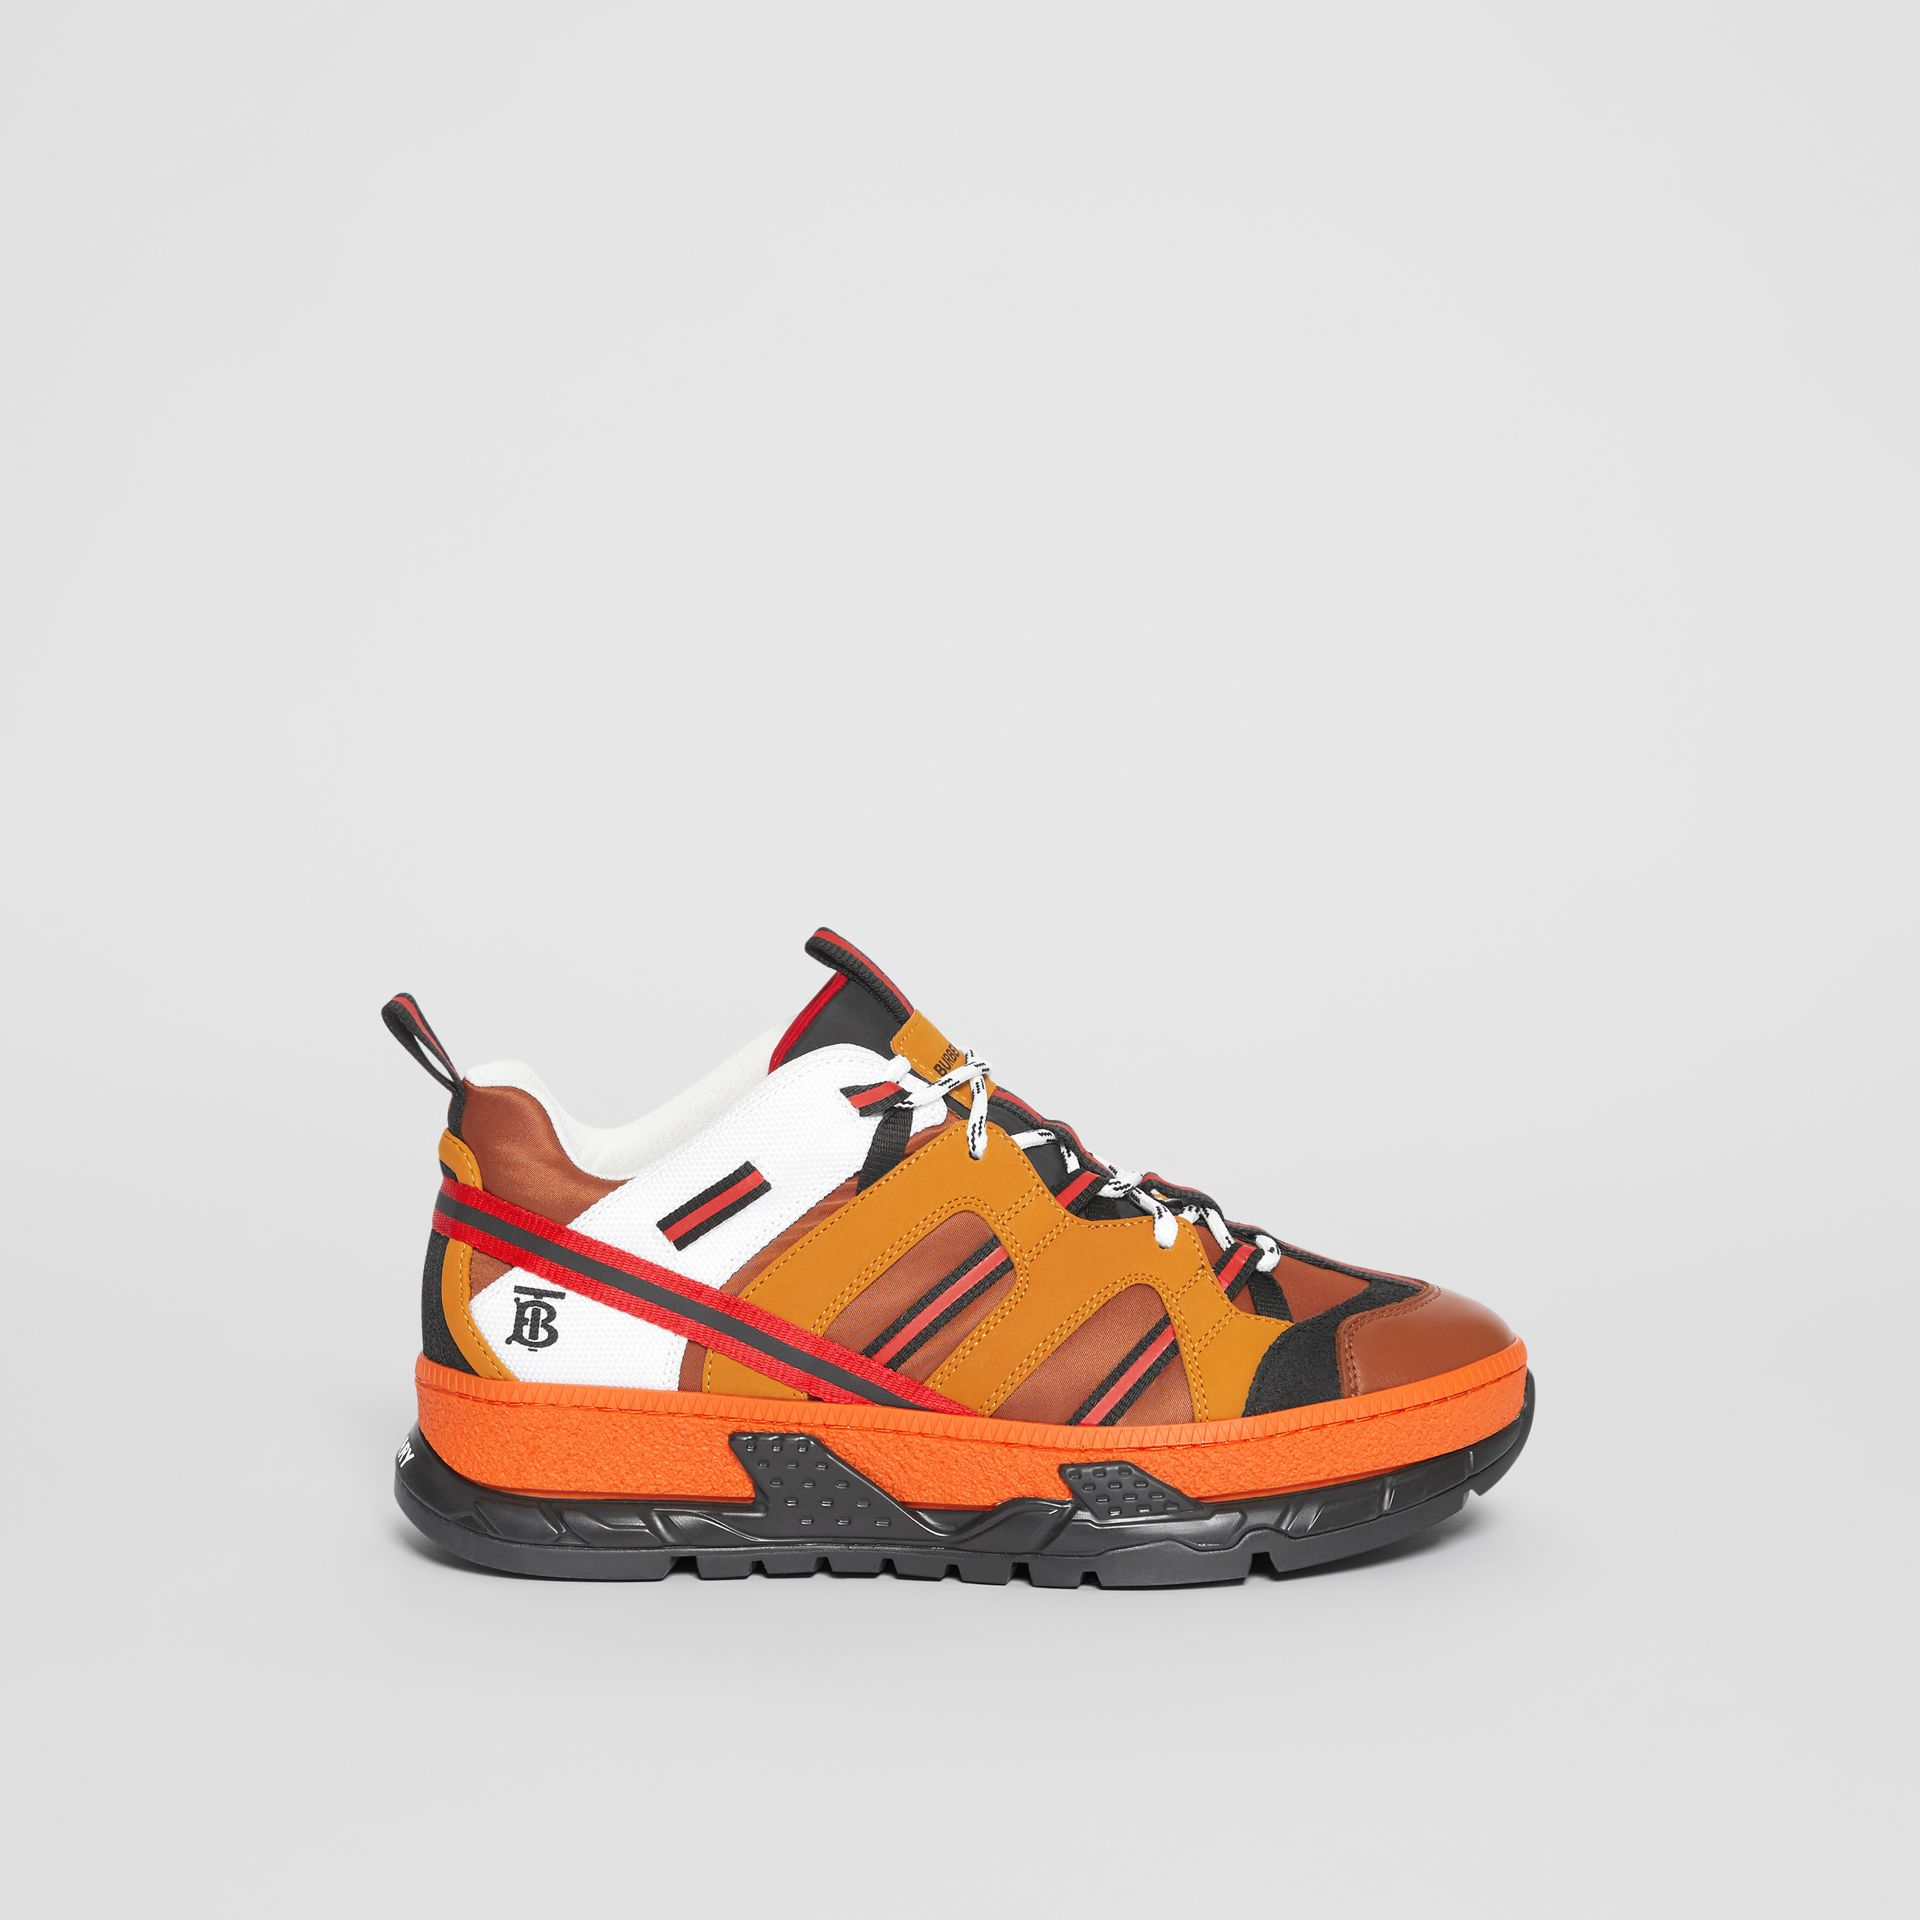 Nylon and Nubuck Union Sneakers in Orange - Men | Burberry Hong Kong S.A.R - gallery image 5